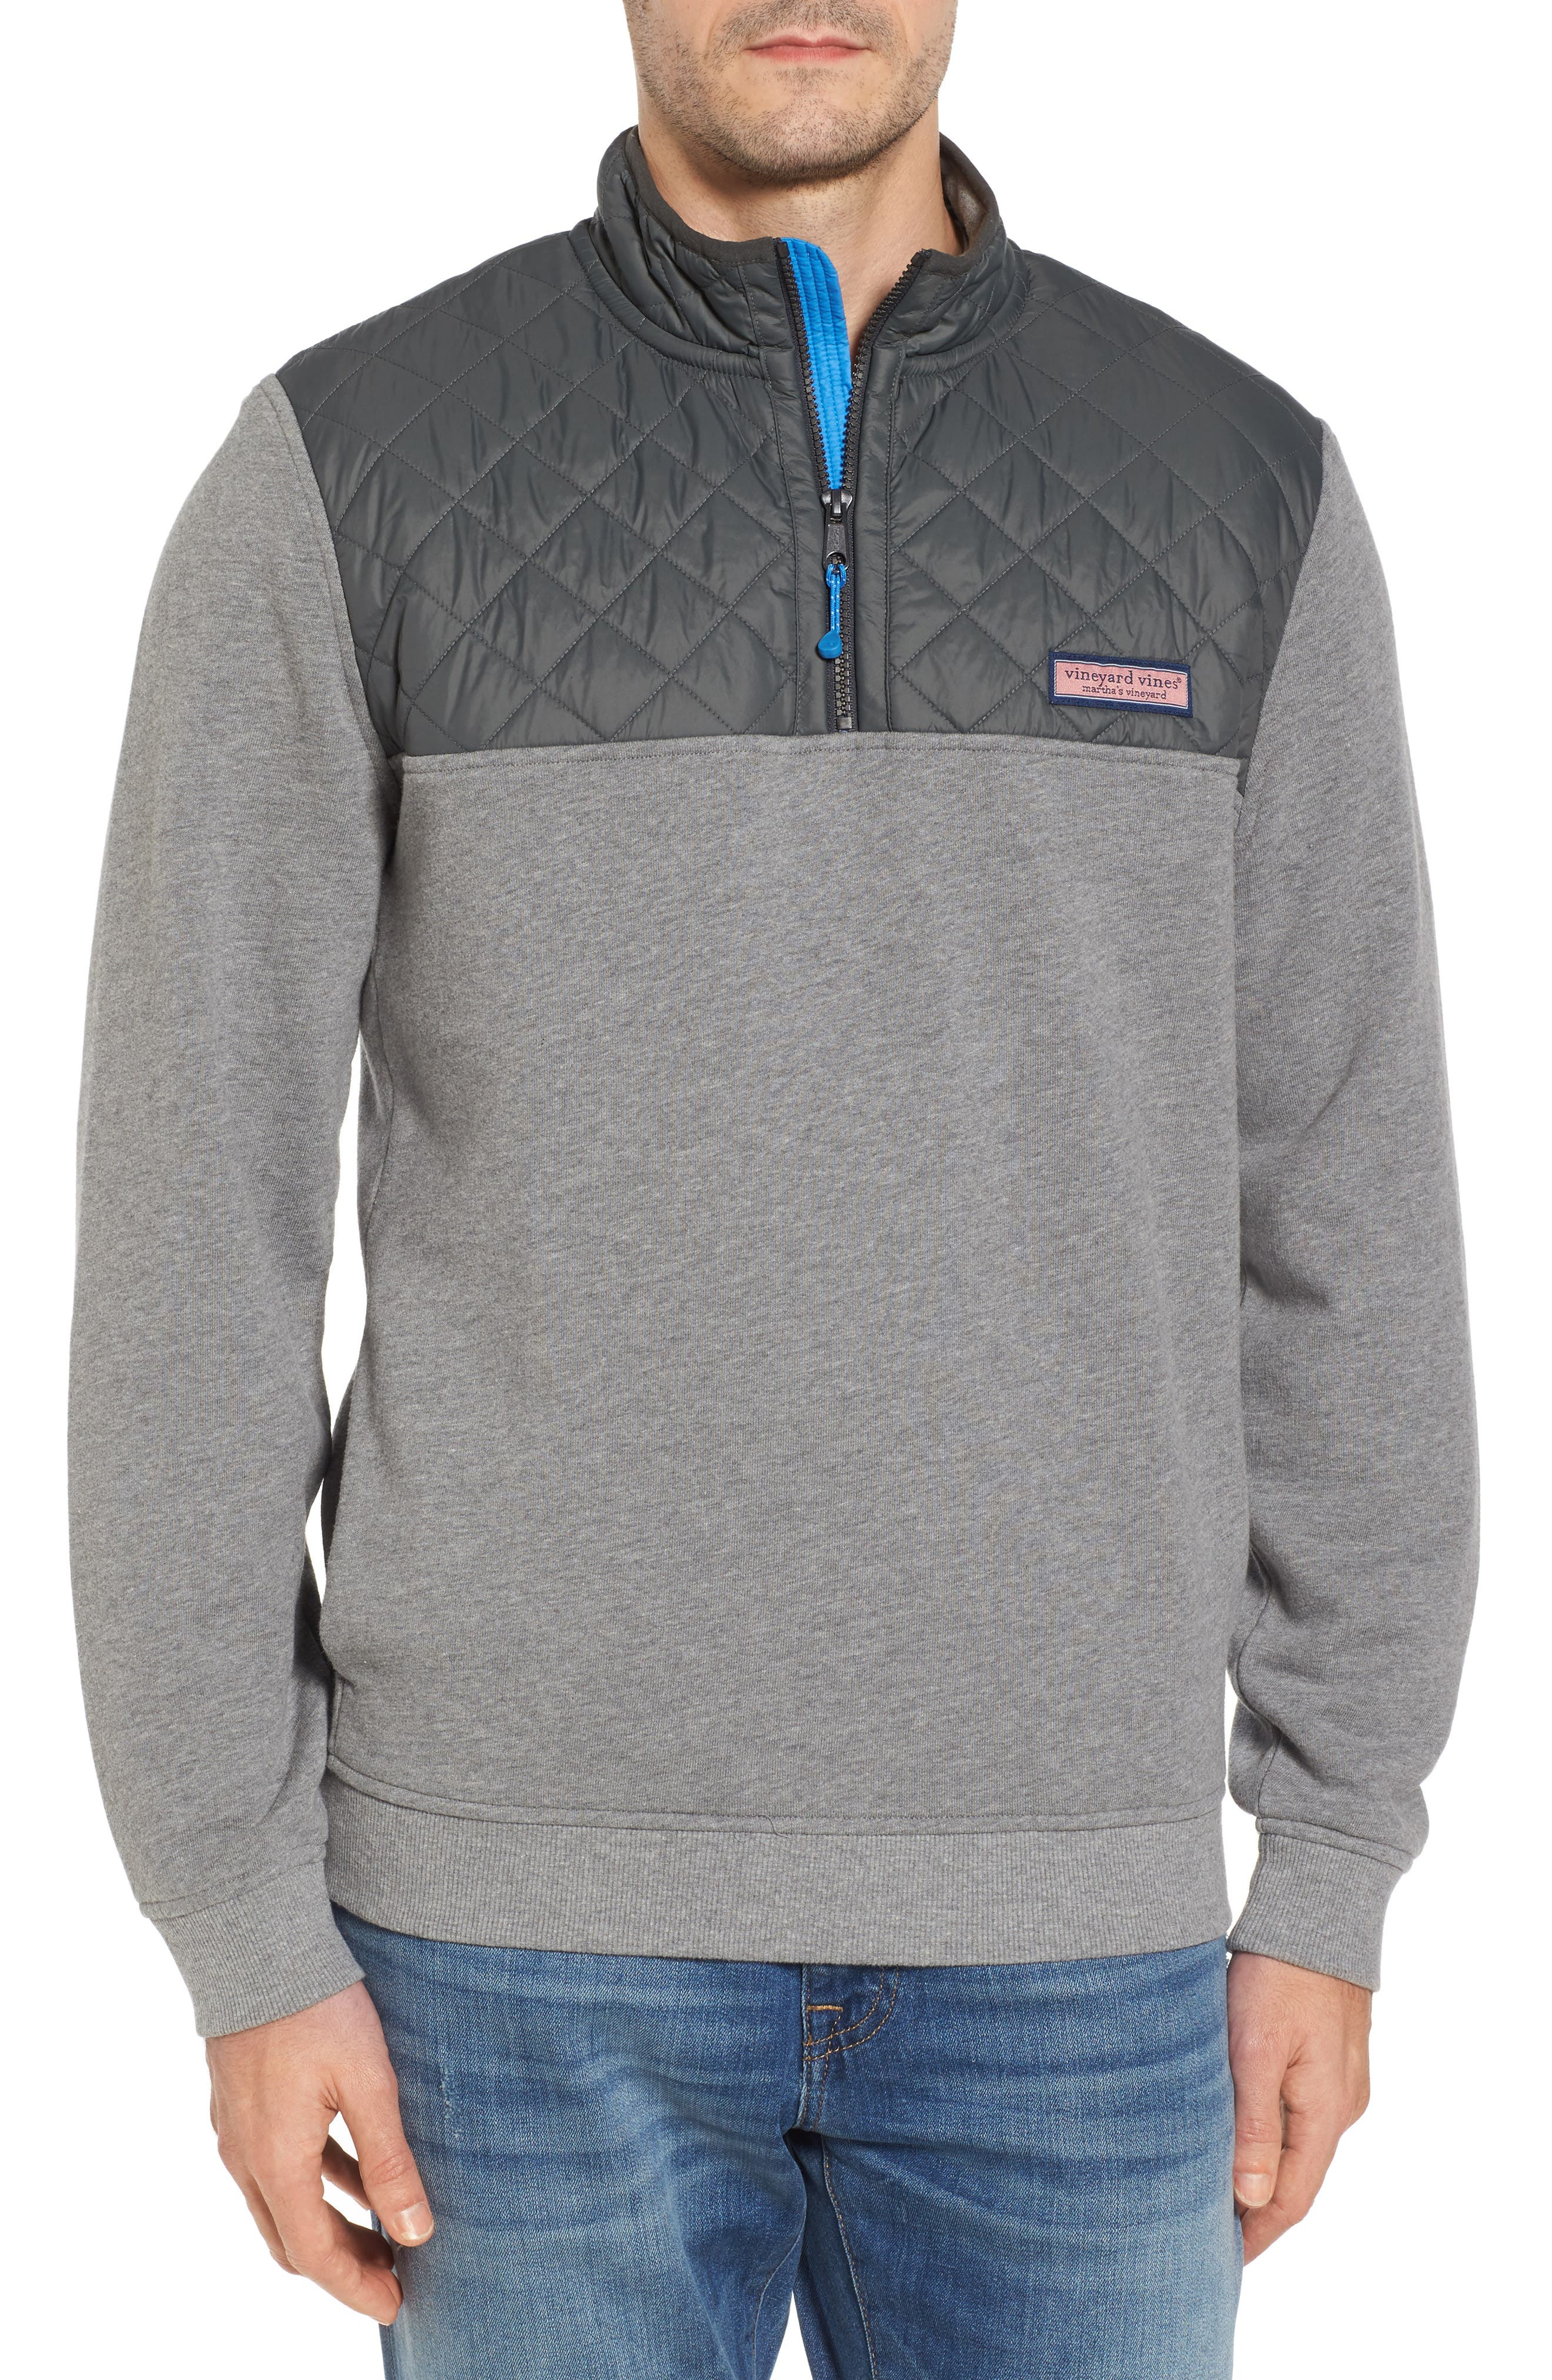 Shep Performance Quilted Yoke Quarter Zip Pullover,                         Main,                         color, Medium Heather Grey